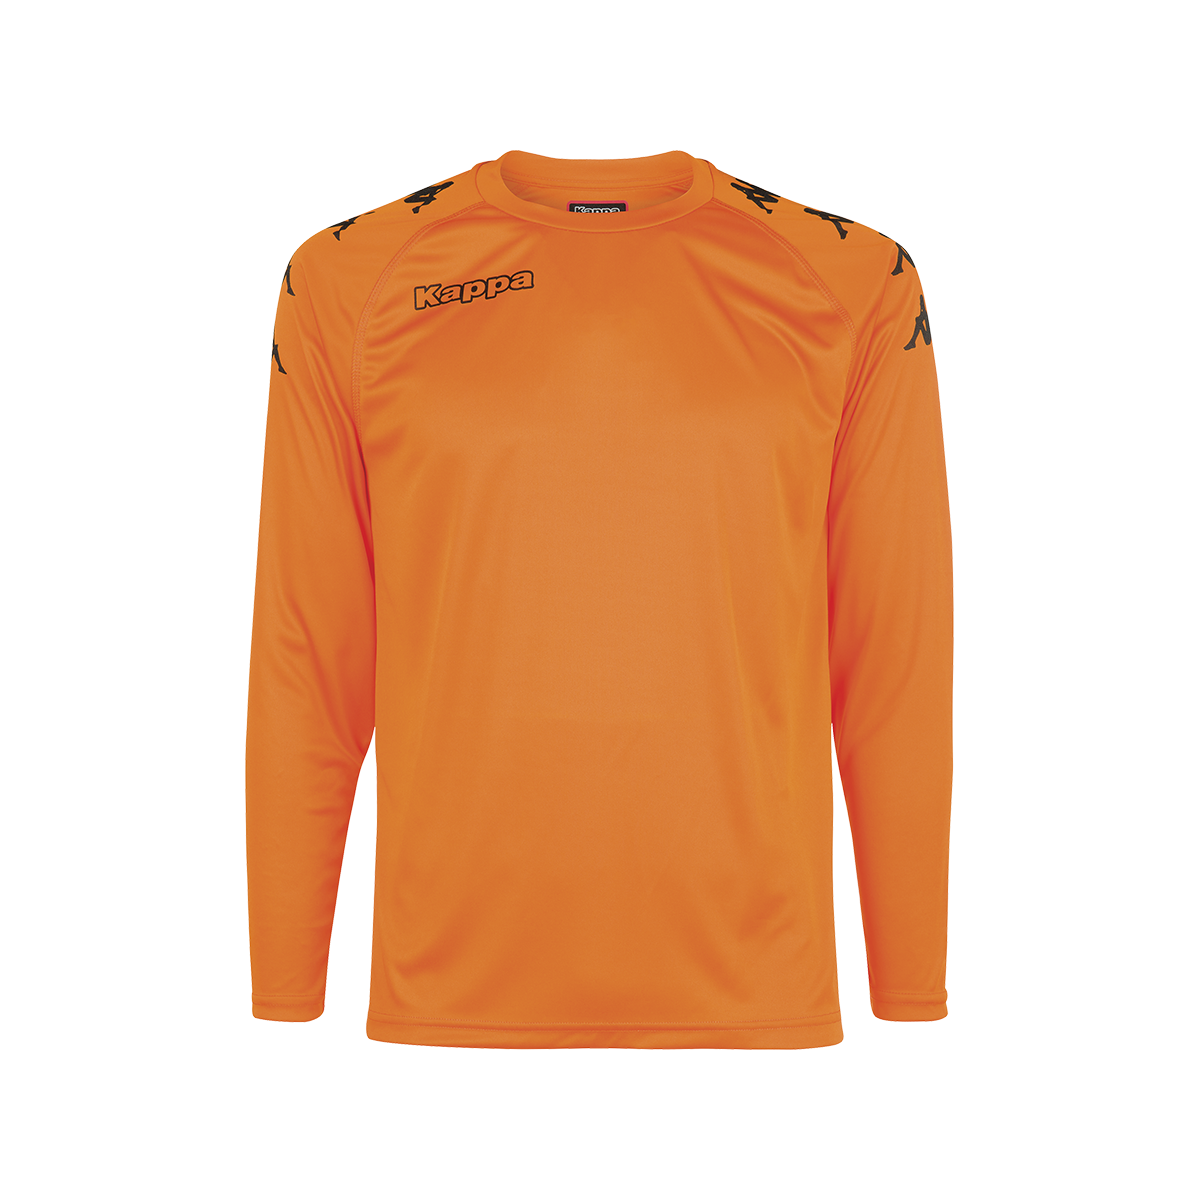 Kappa Cinanda Match Shirt LS - Orange